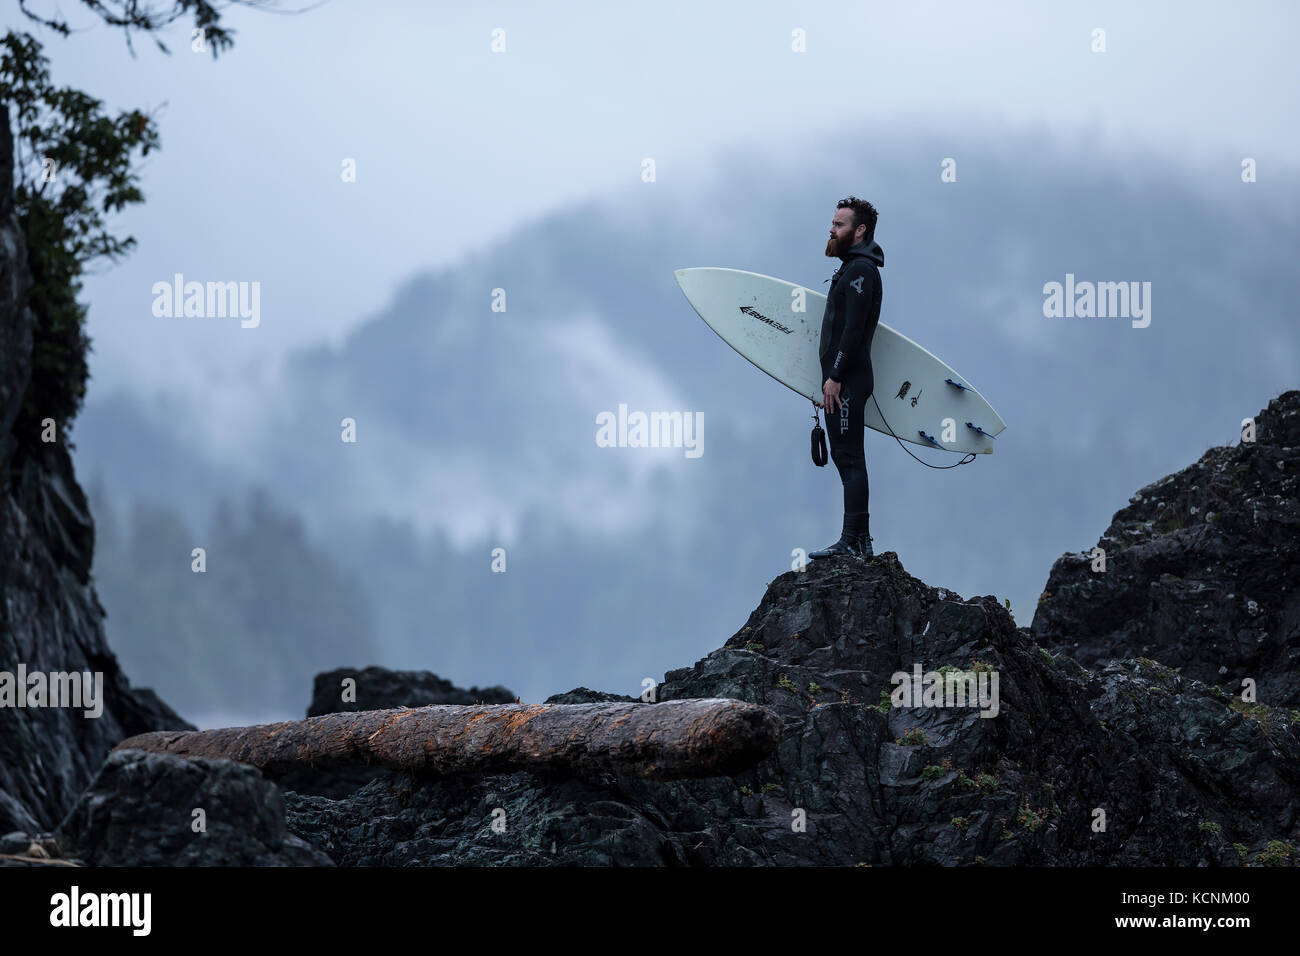 A surfer makes his way back to camp after a recon for waves on Spring Island's westernmost shoreline.  Kyuquot, Vancouver Island, British Columbia, Canada Stock Photo